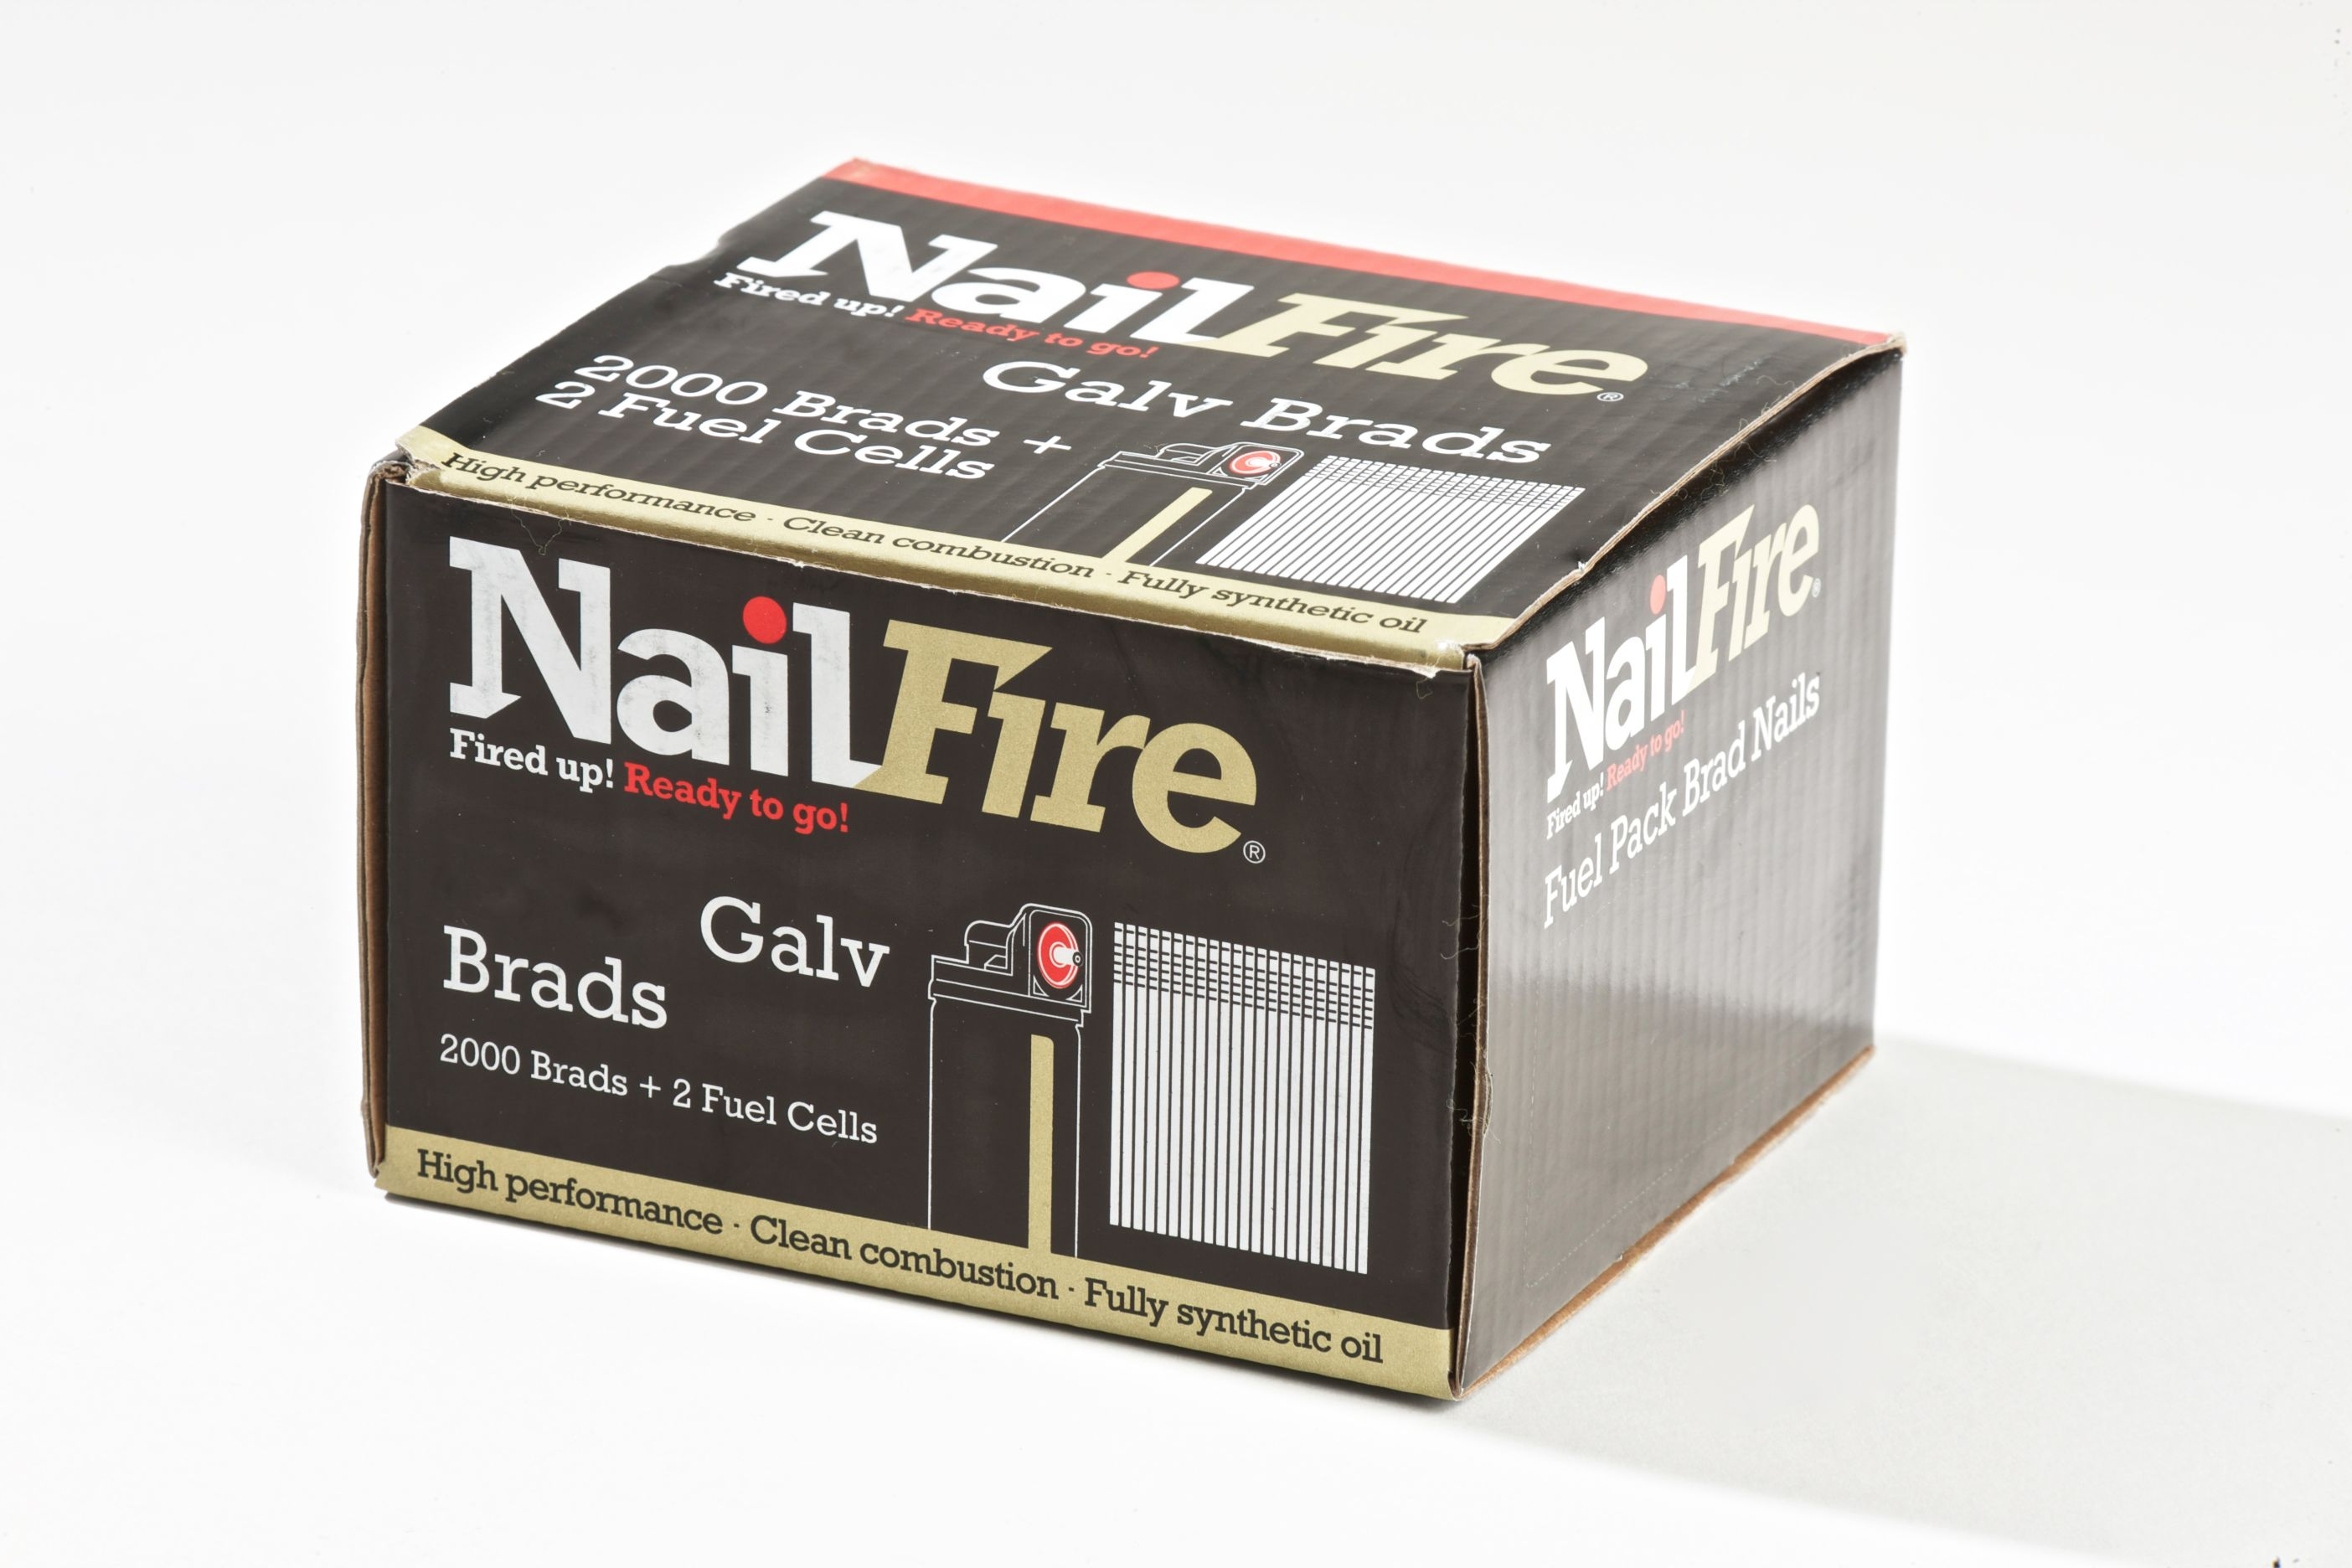 NAILFIRE 2ND FIX STRAIGHT E-GALV BRAD & FUEL PACK 25MM (TUB OF 2000)